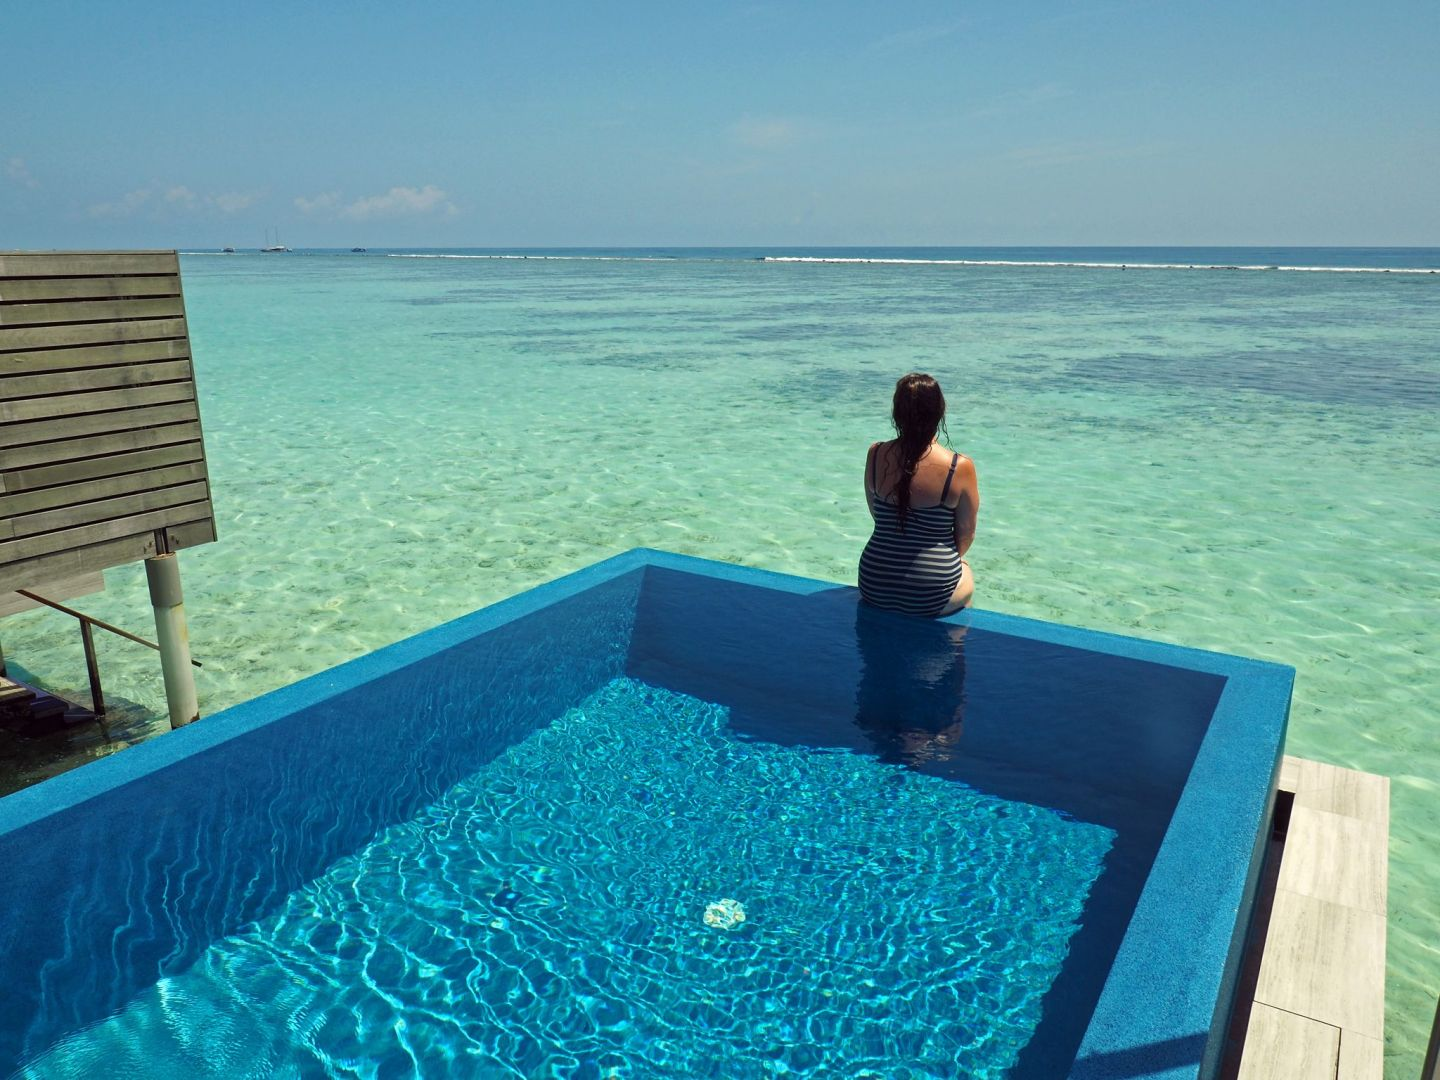 Girl sitting on edge private Infinity Pool LUX Maldives